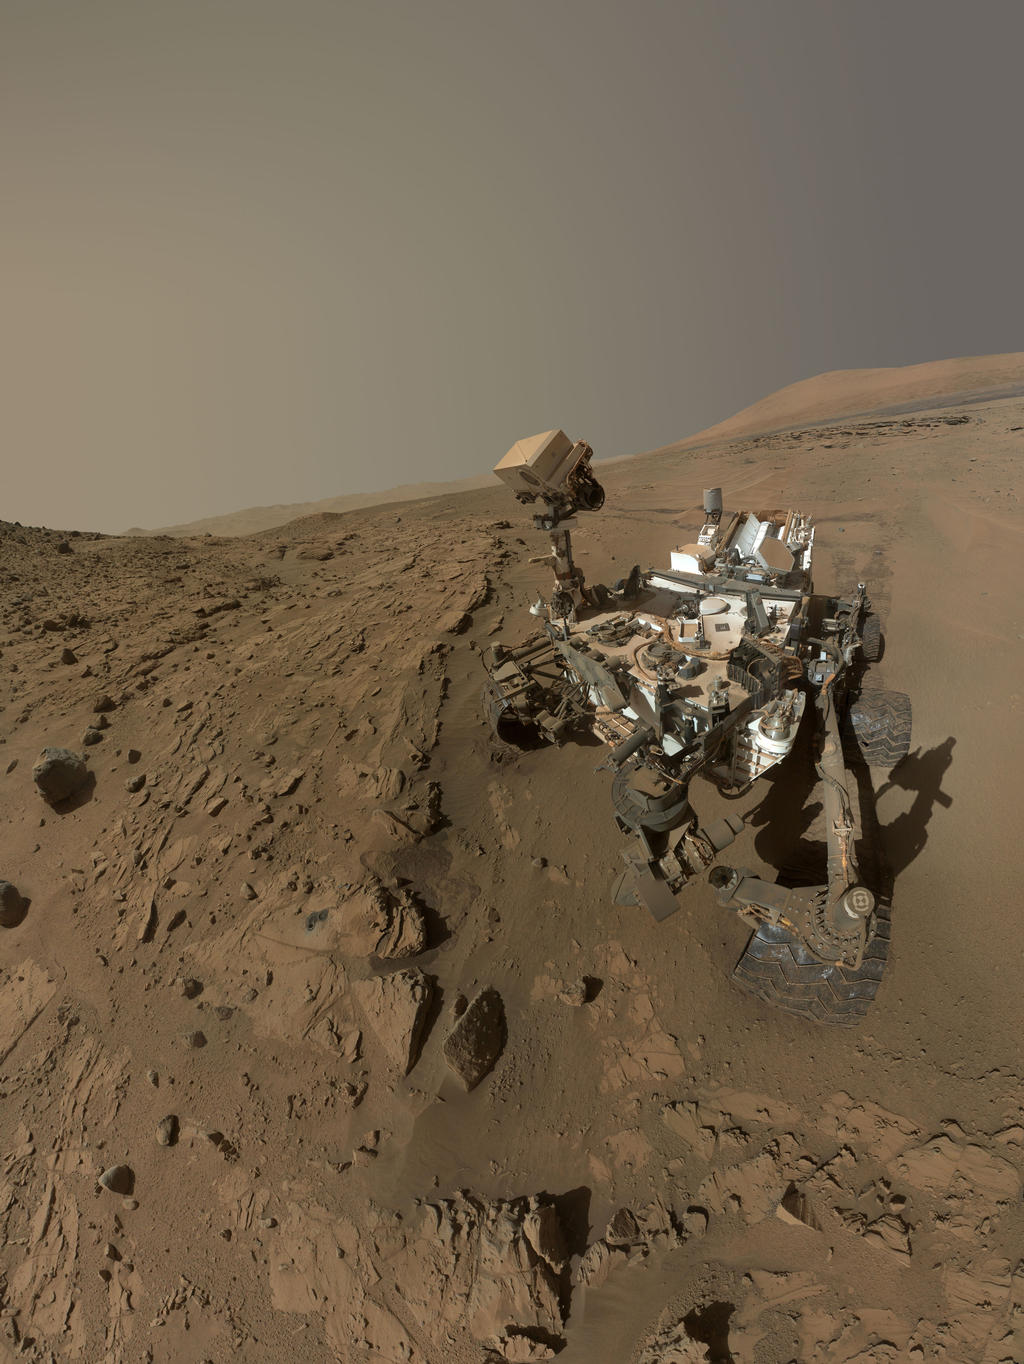 Curiosity, rover, self-portrait, rock, drilling, windjana, waypoint, kimberley - This image is a self-portrait of the Curiosity rover taken from the site with the rover's 'head' down, with rock formations surrounding it and Mount Sharp in the background.